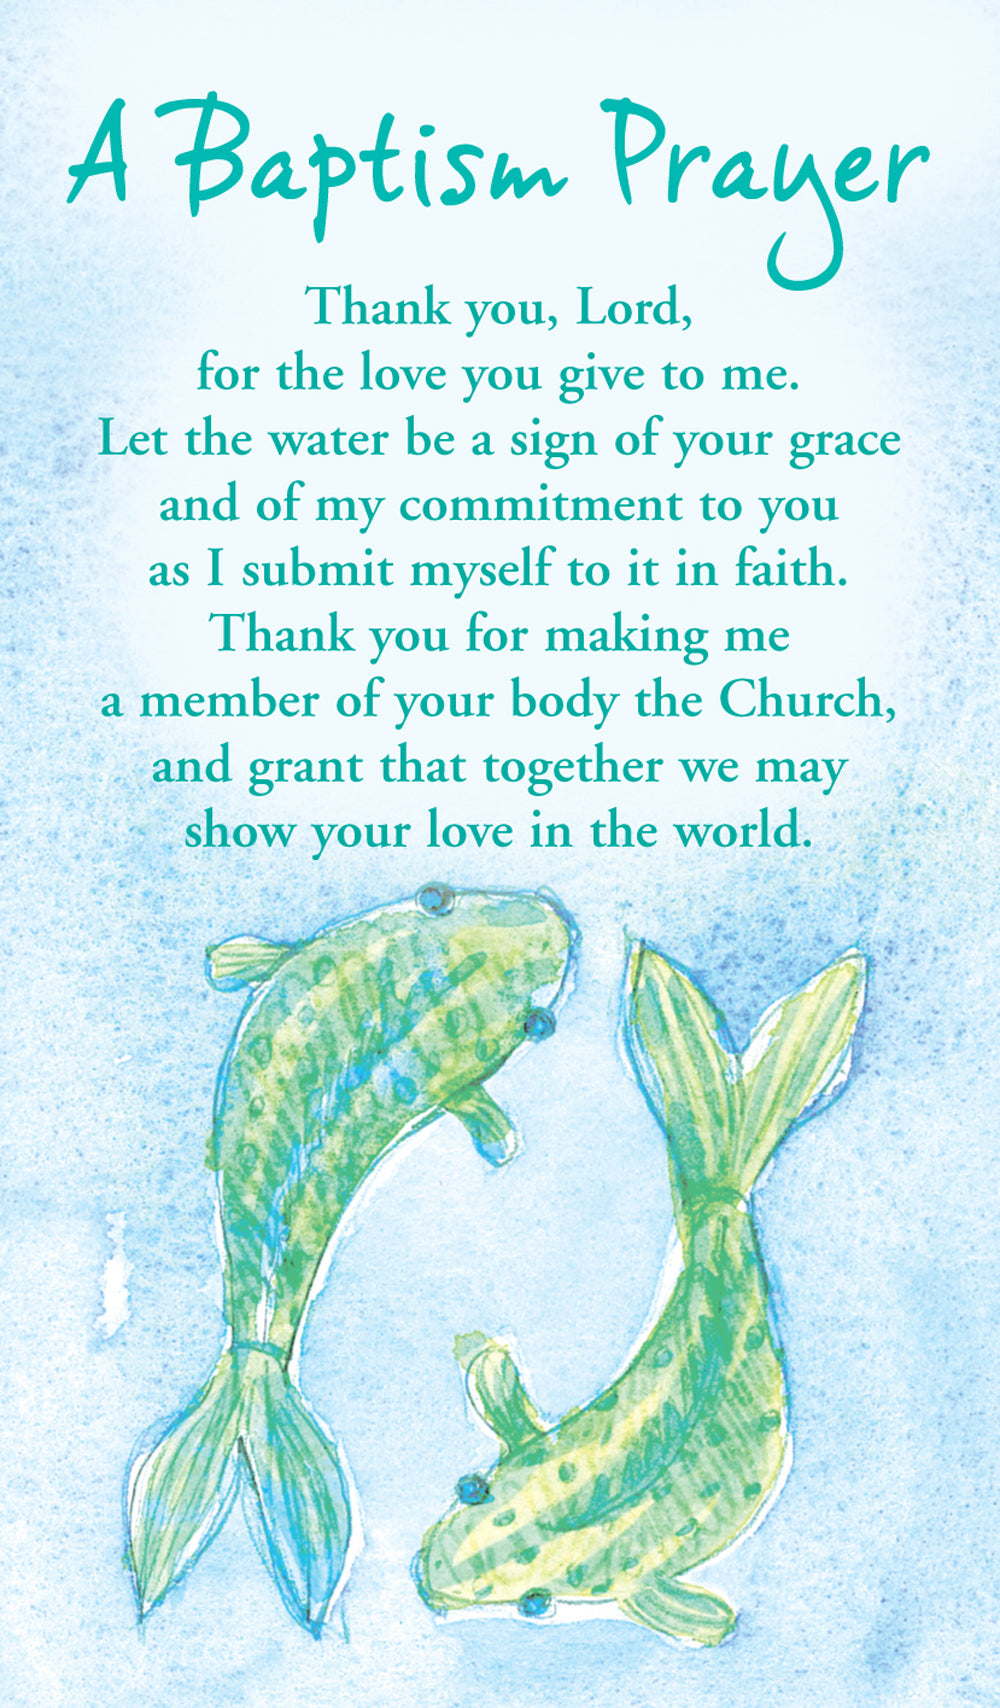 Prayer Card - Baptism PrayerPrayer Card - Baptism Prayer